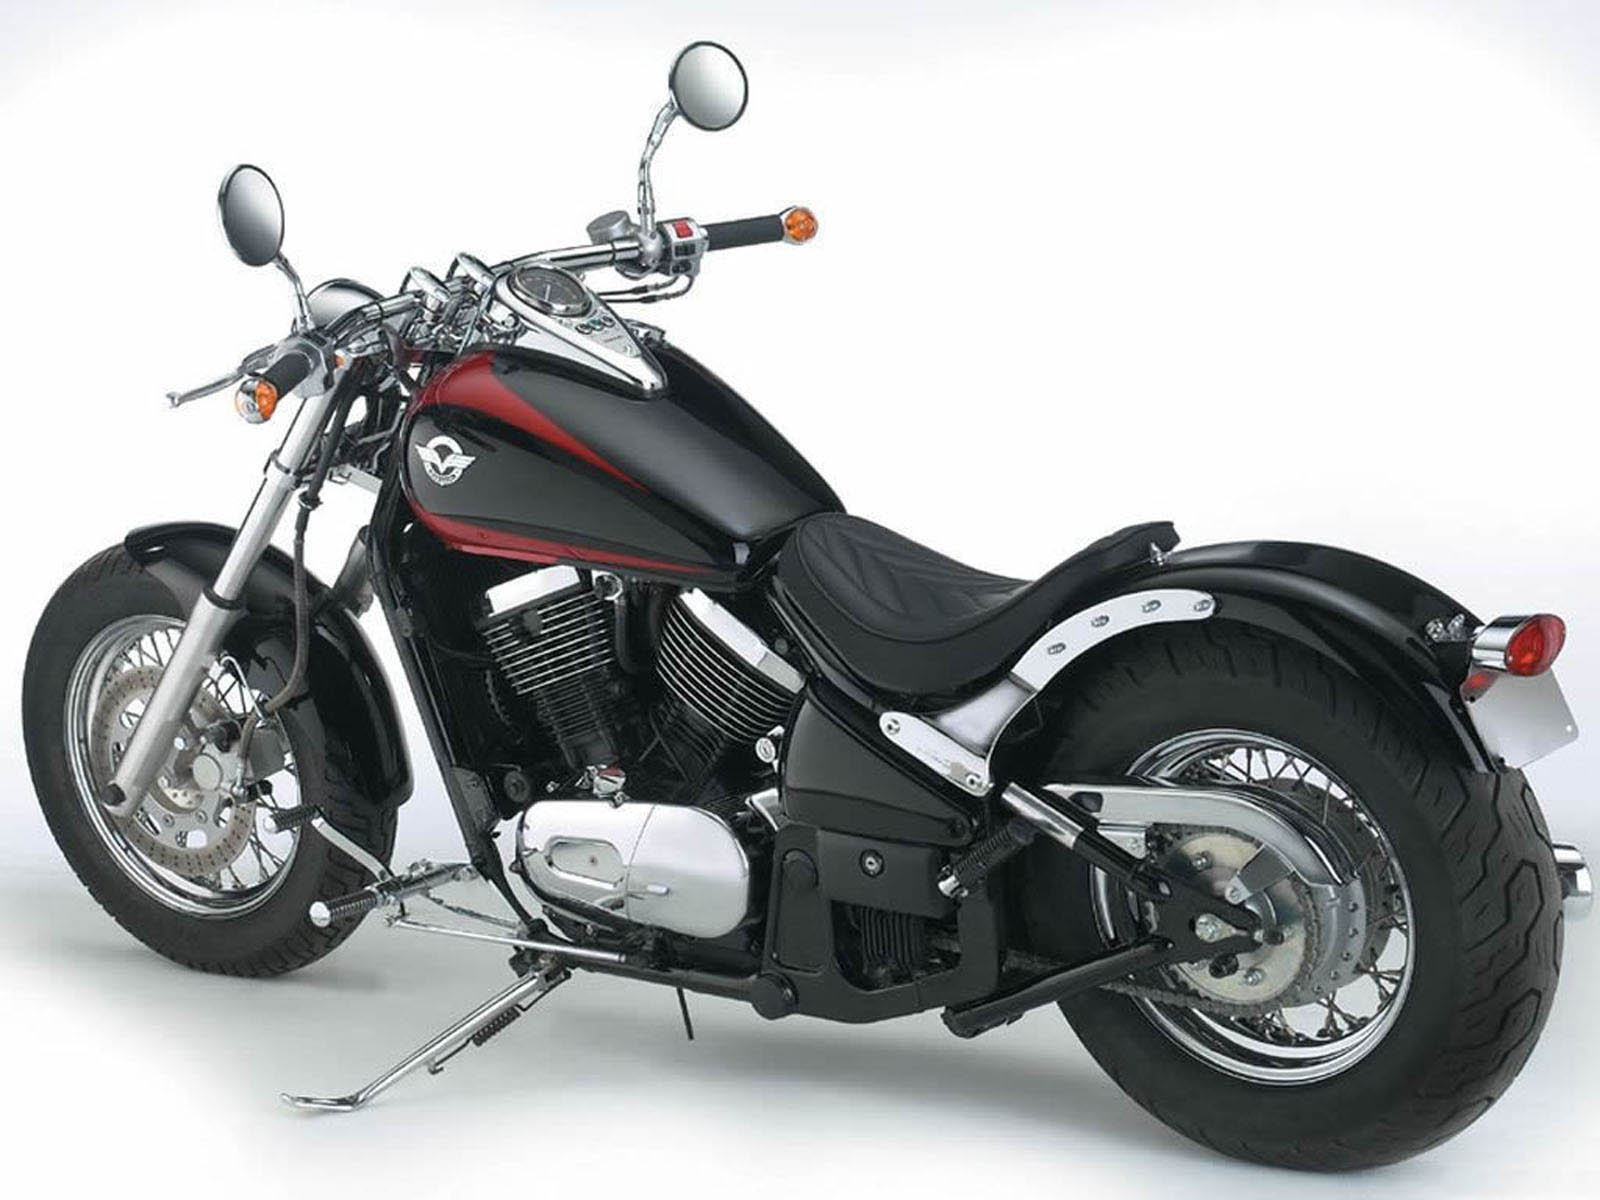 Harley Davidson Bikes Photos - 2013 Wallpapers